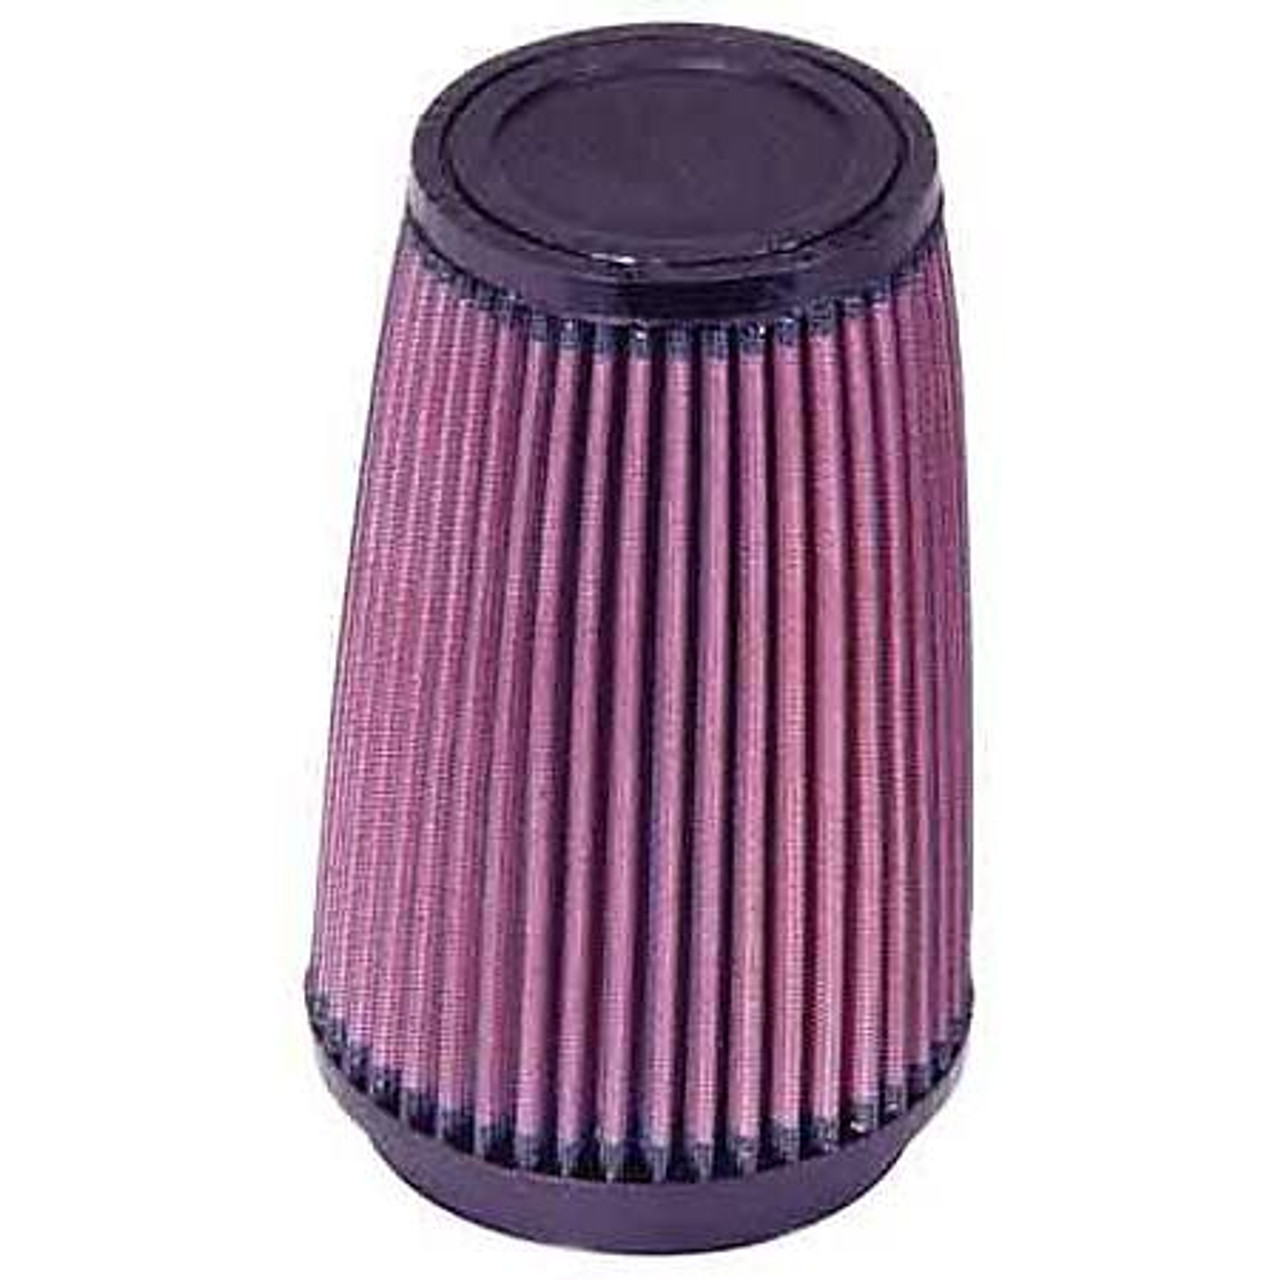 Replacement air filter for S54 VT kits.